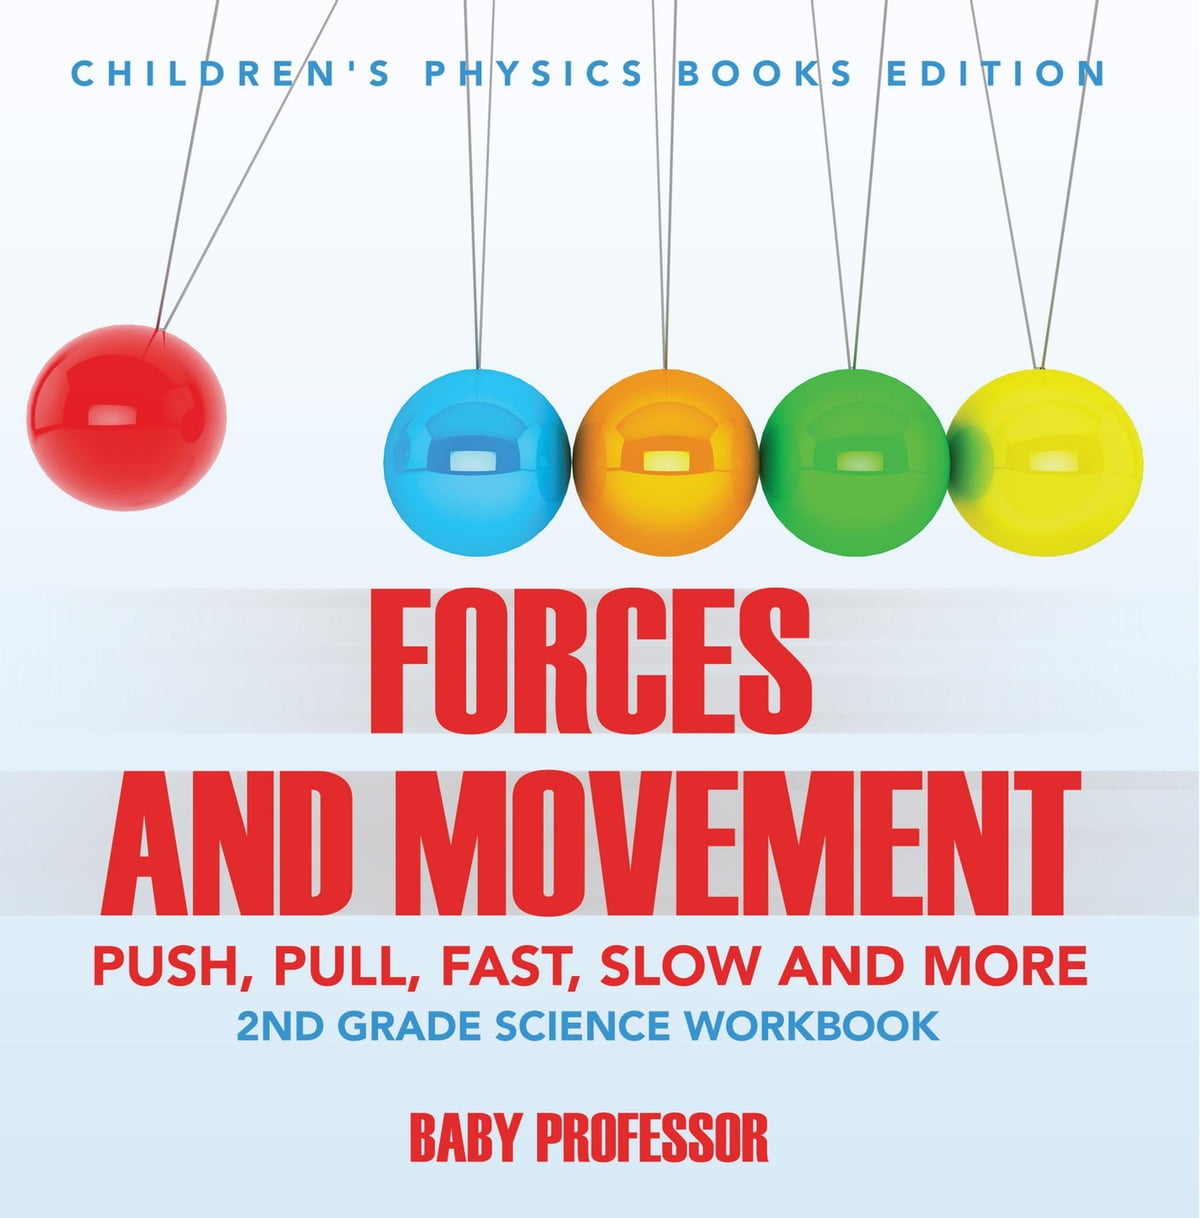 Forces And Movement Push Pull Fast Slow And More 2nd